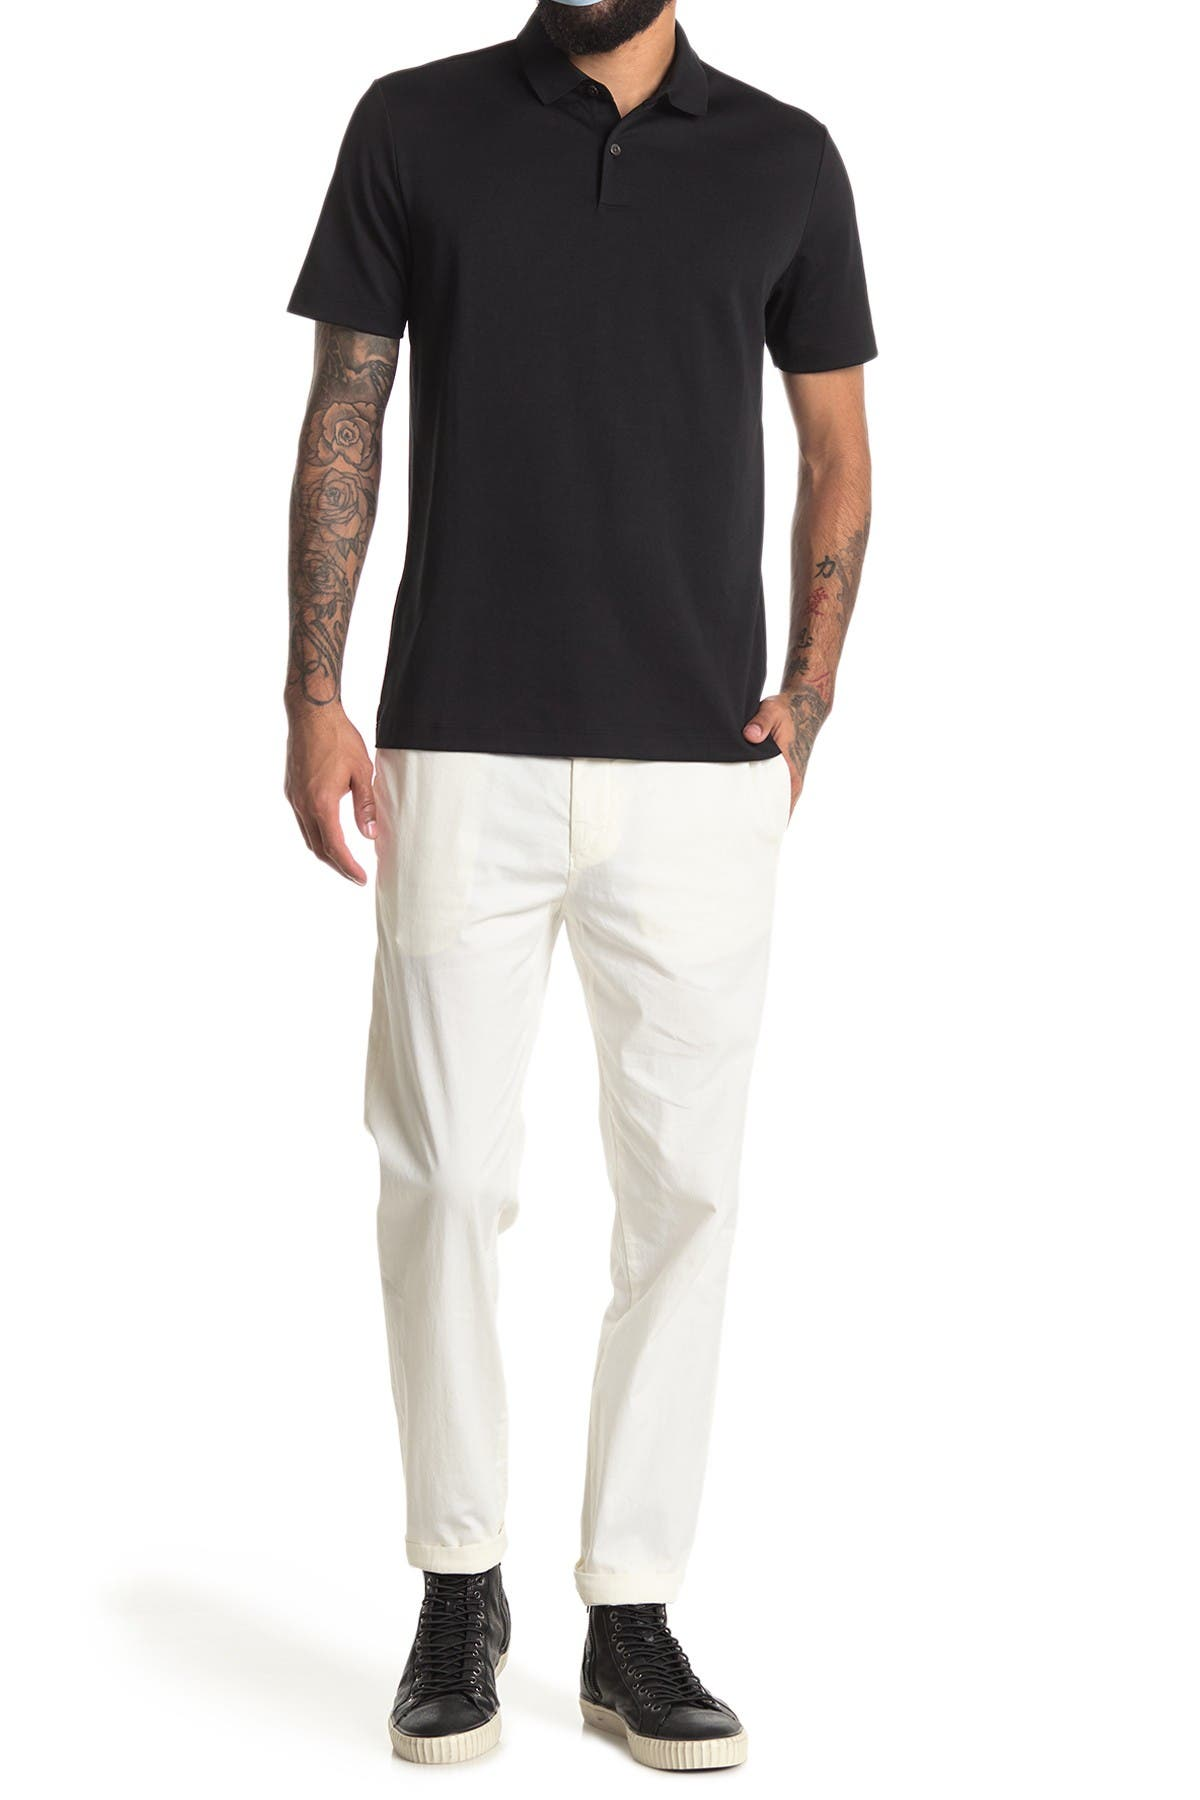 Image of Theory Zaine Patton Flat Front Stretch Solid Cotton Pants